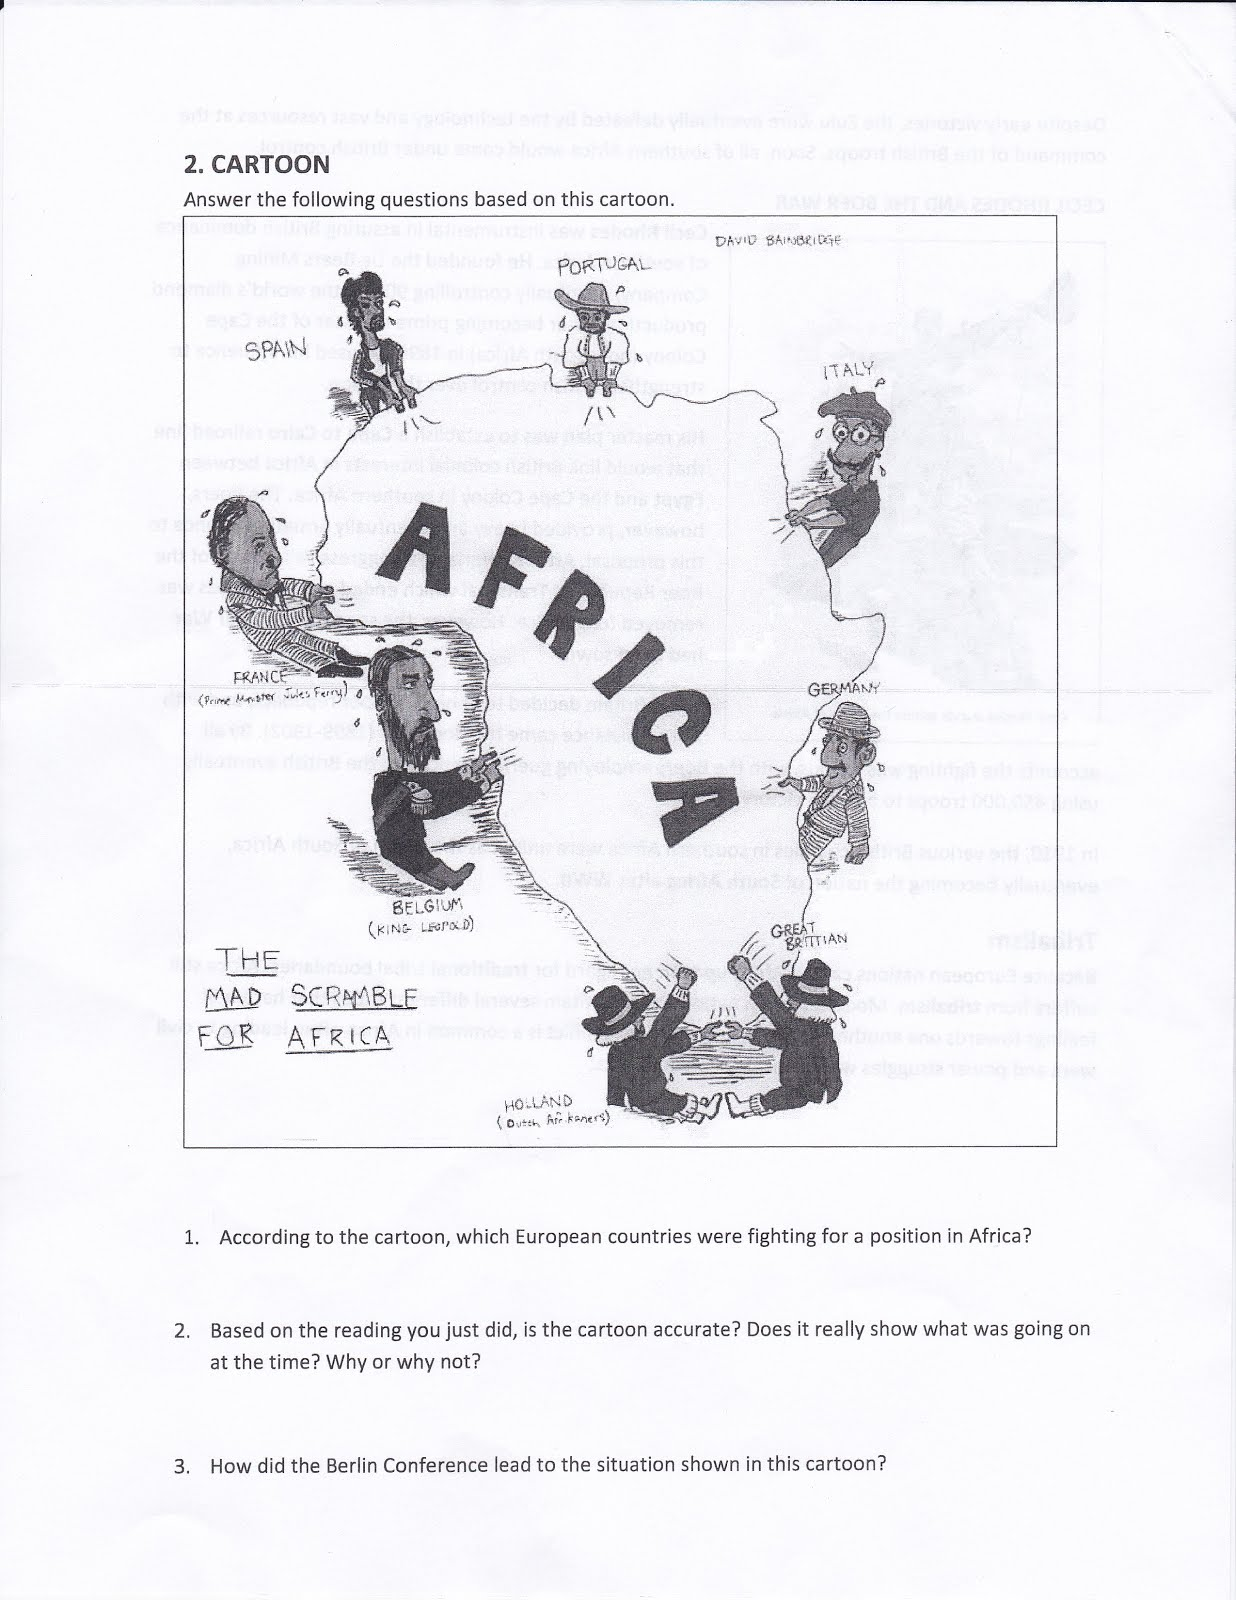 Mr Izor S Akins Geography Scramble For Africa